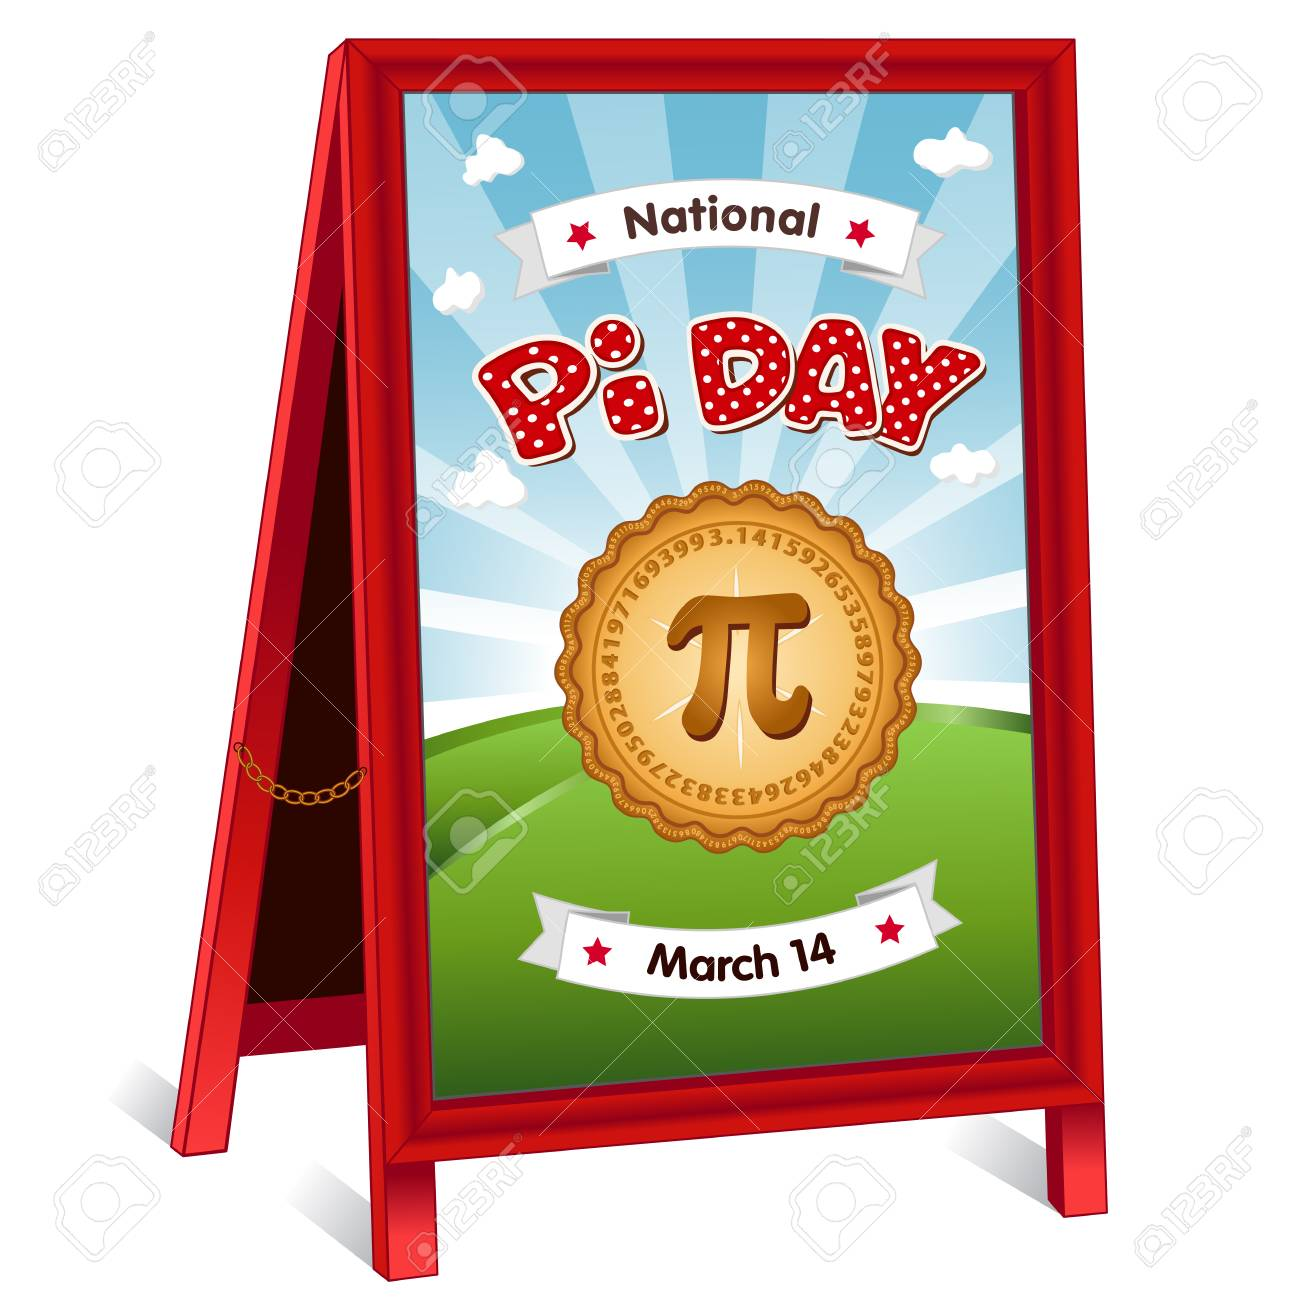 Pi Day, March 14, to celebrate the mathematical constant pi and to eat lots of fresh baked sweet pie, international holiday, red polka dot text, blue sky and clouds background, sidewalk chalk board sign, folding easel with brass chain. - 125108992